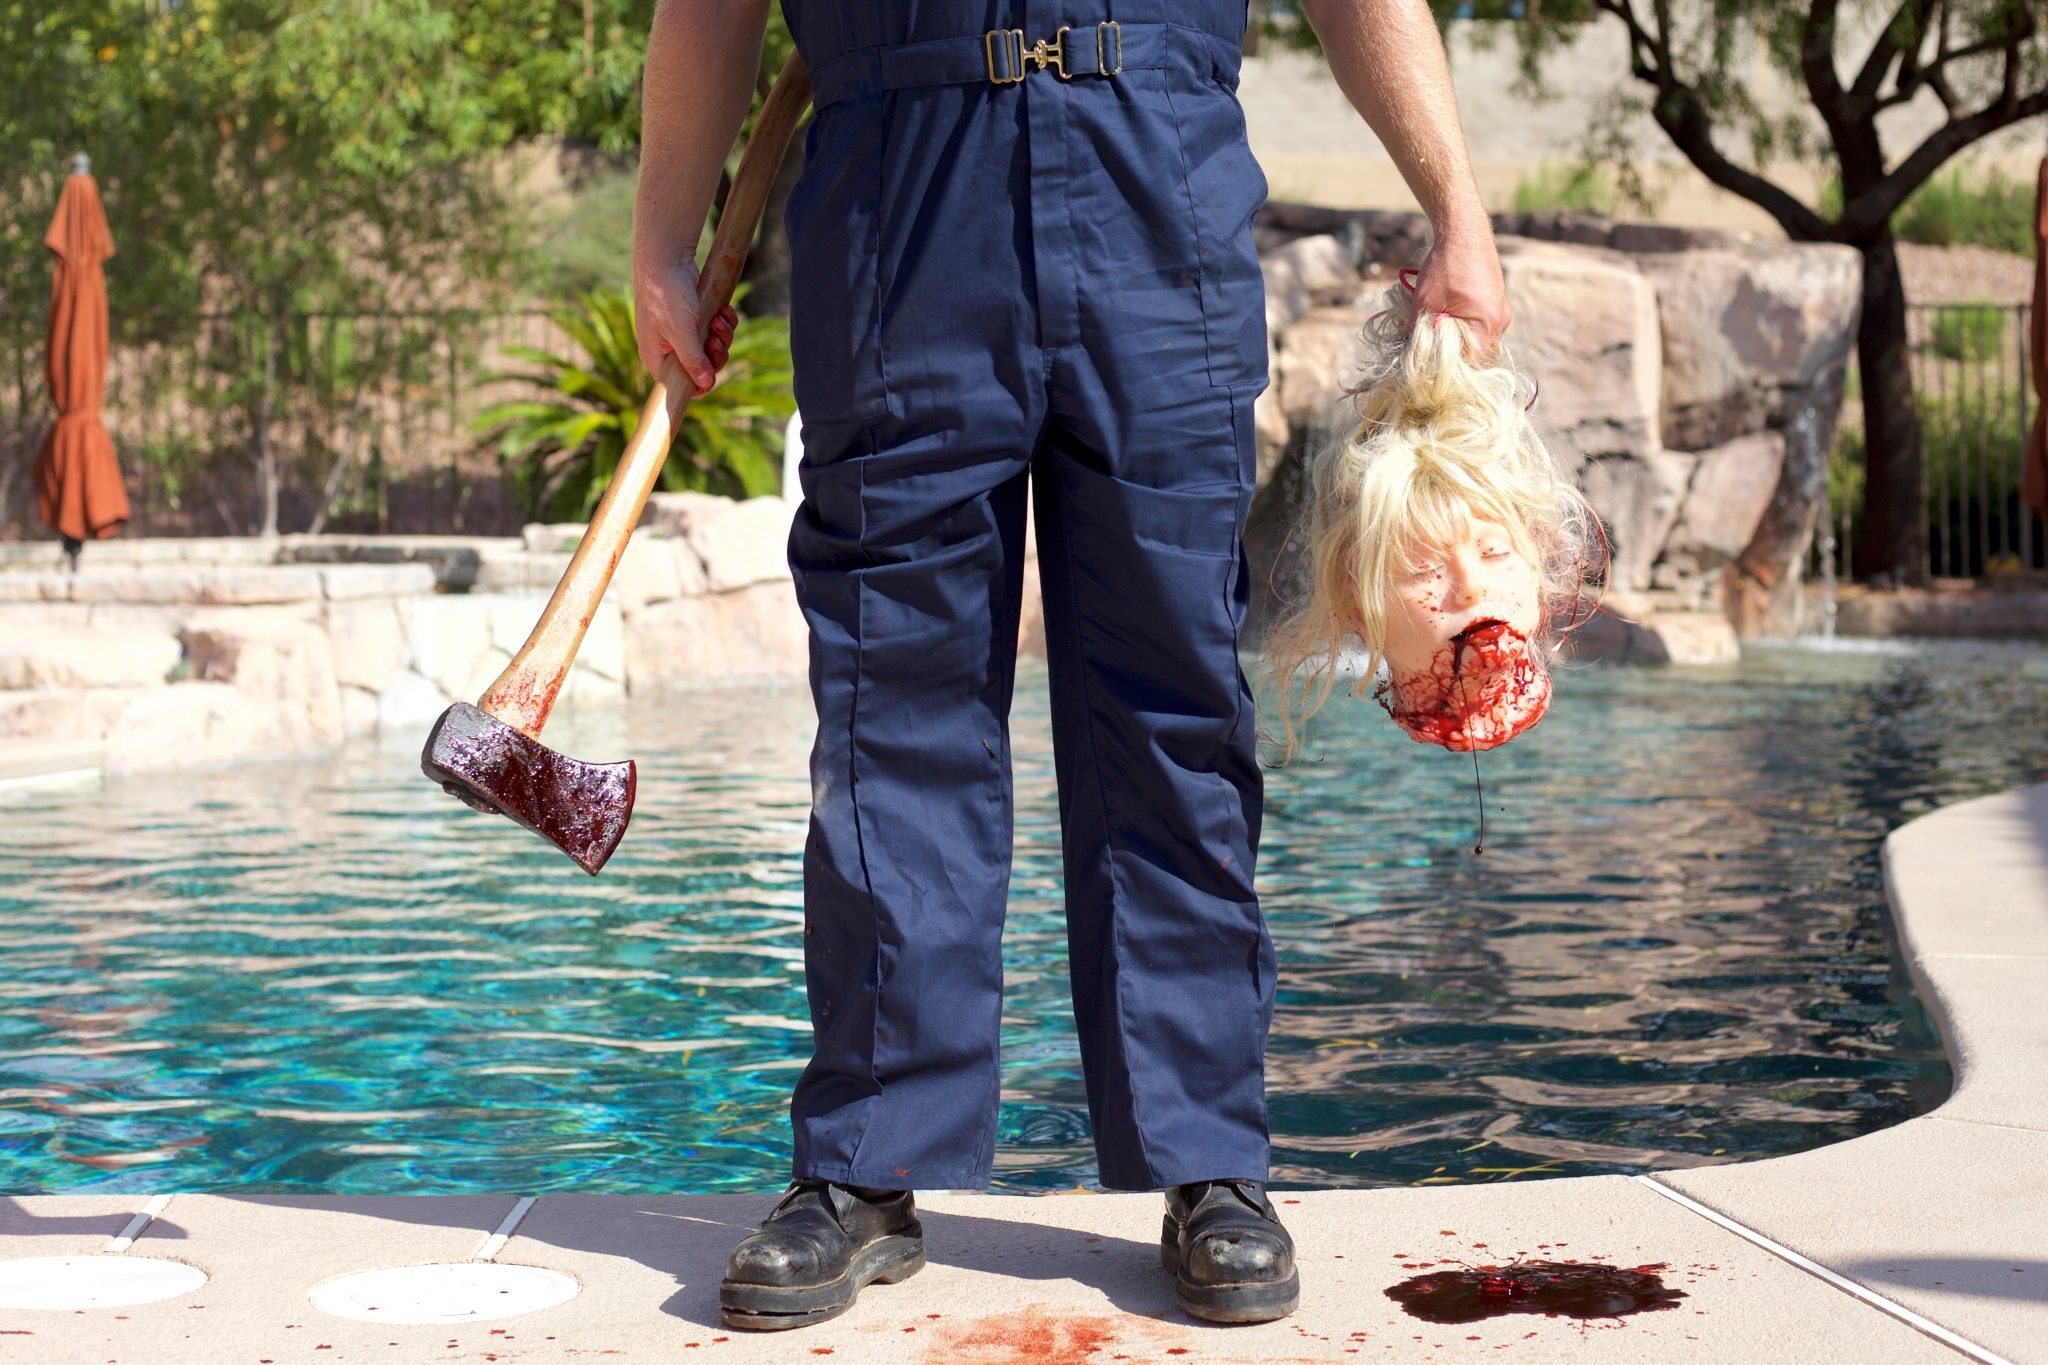 The killer with severed head in Pool Party Massacre (2017)